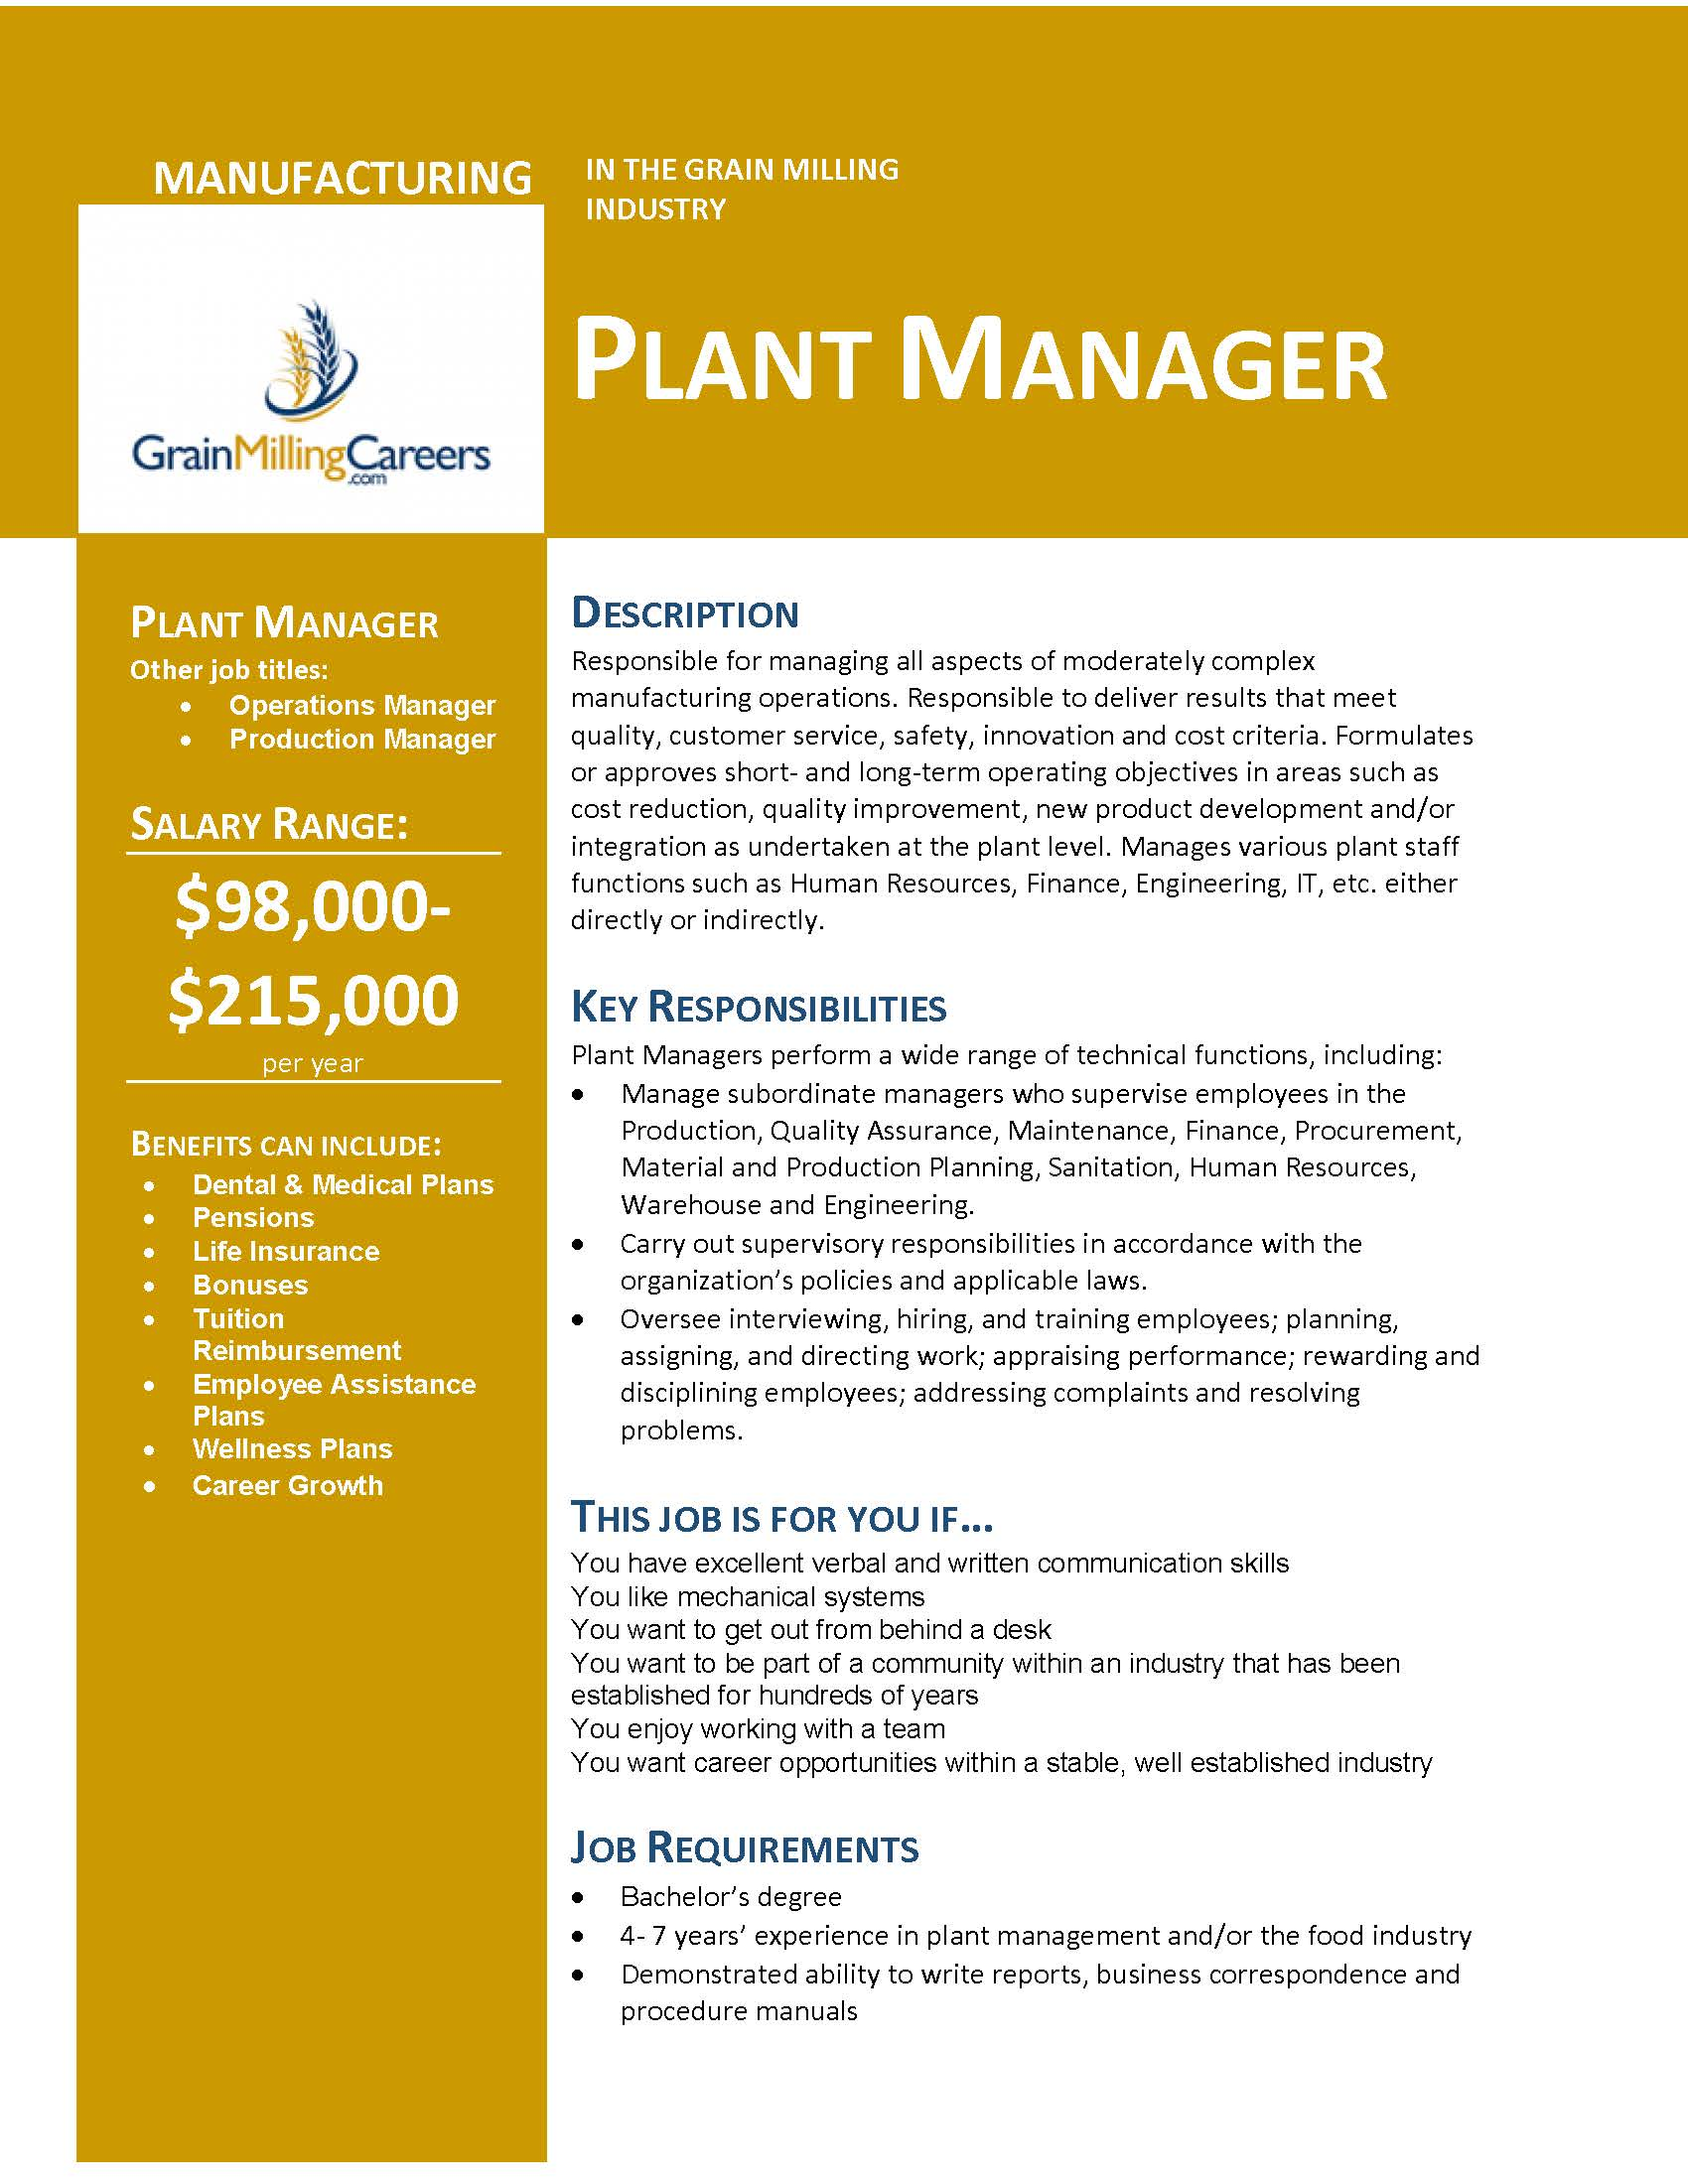 superbe plantmanager. Description; Responsibilities ...